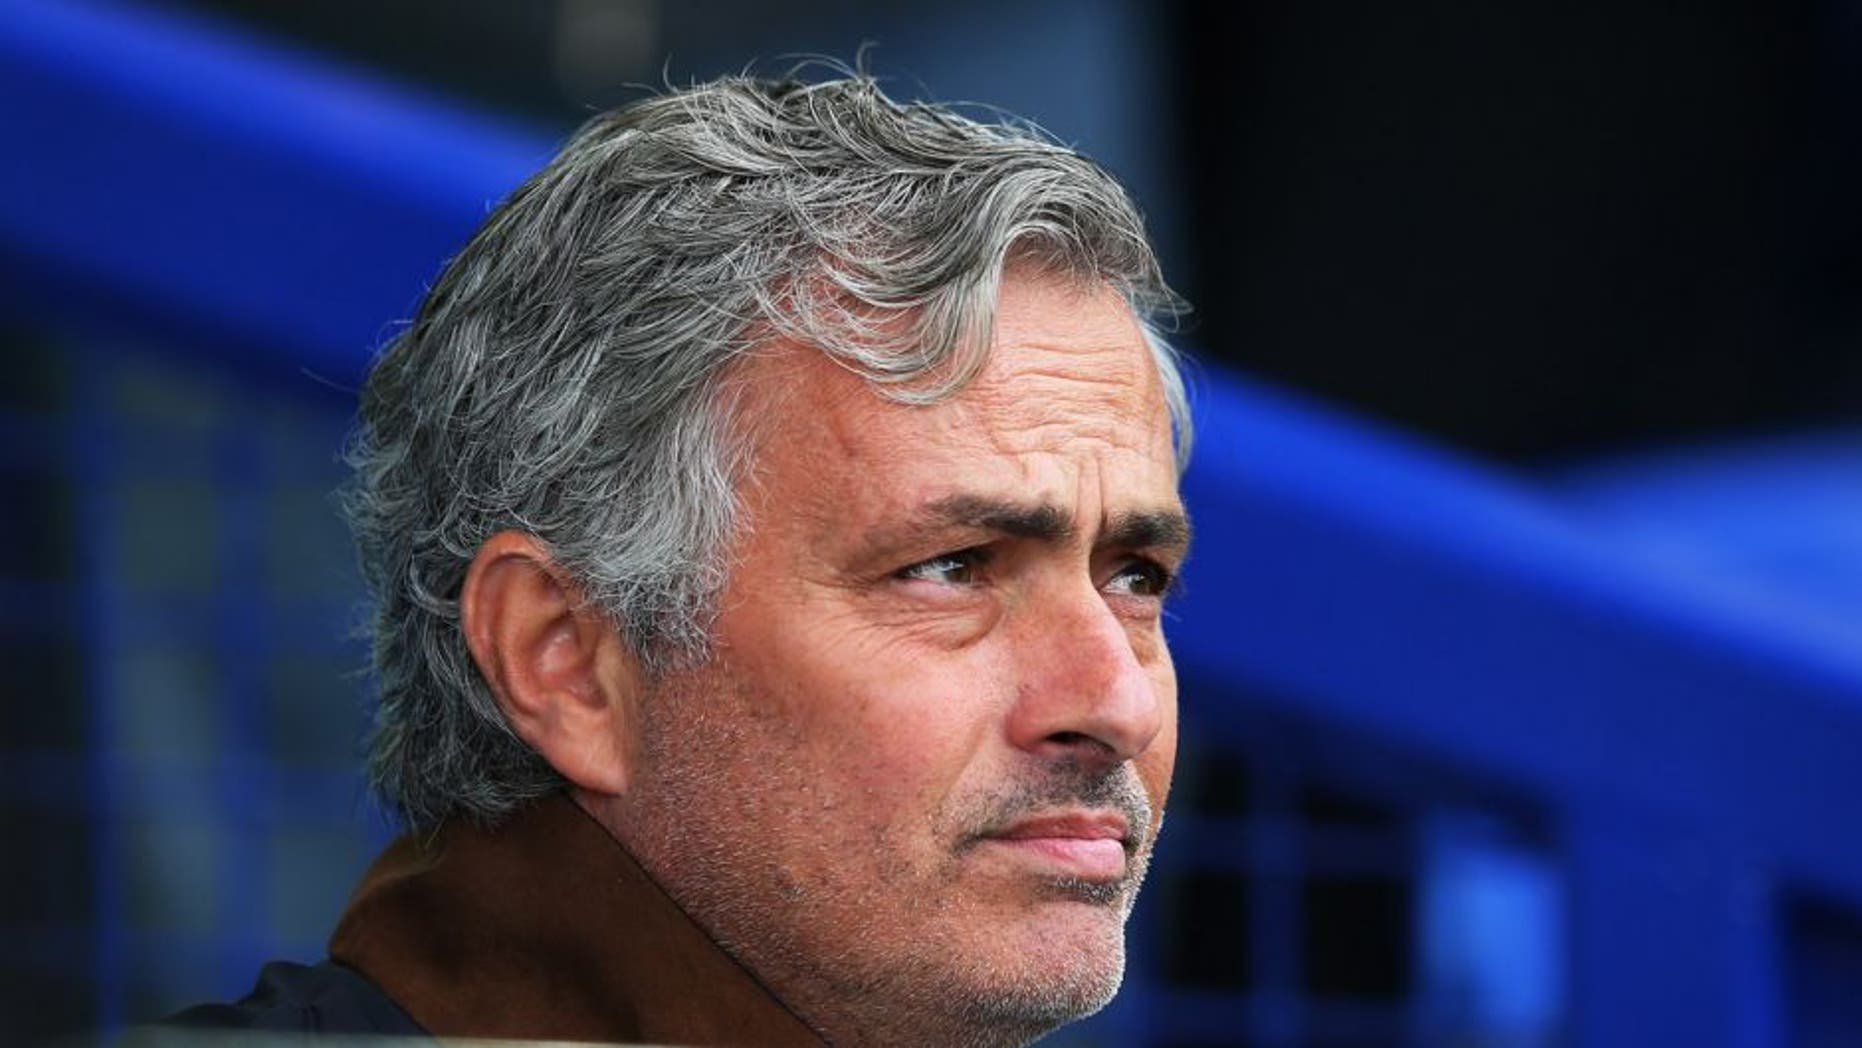 LIVERPOOL, ENGLAND - SEPTEMBER 12: Jose Mourinho, manager of Chelsea looks on during the Barclays Premier League match between Everton and Chelsea at Goodison Park on September 12, 2015 in Liverpool, United Kingdom. (Photo by Alex Livesey/Getty Images)